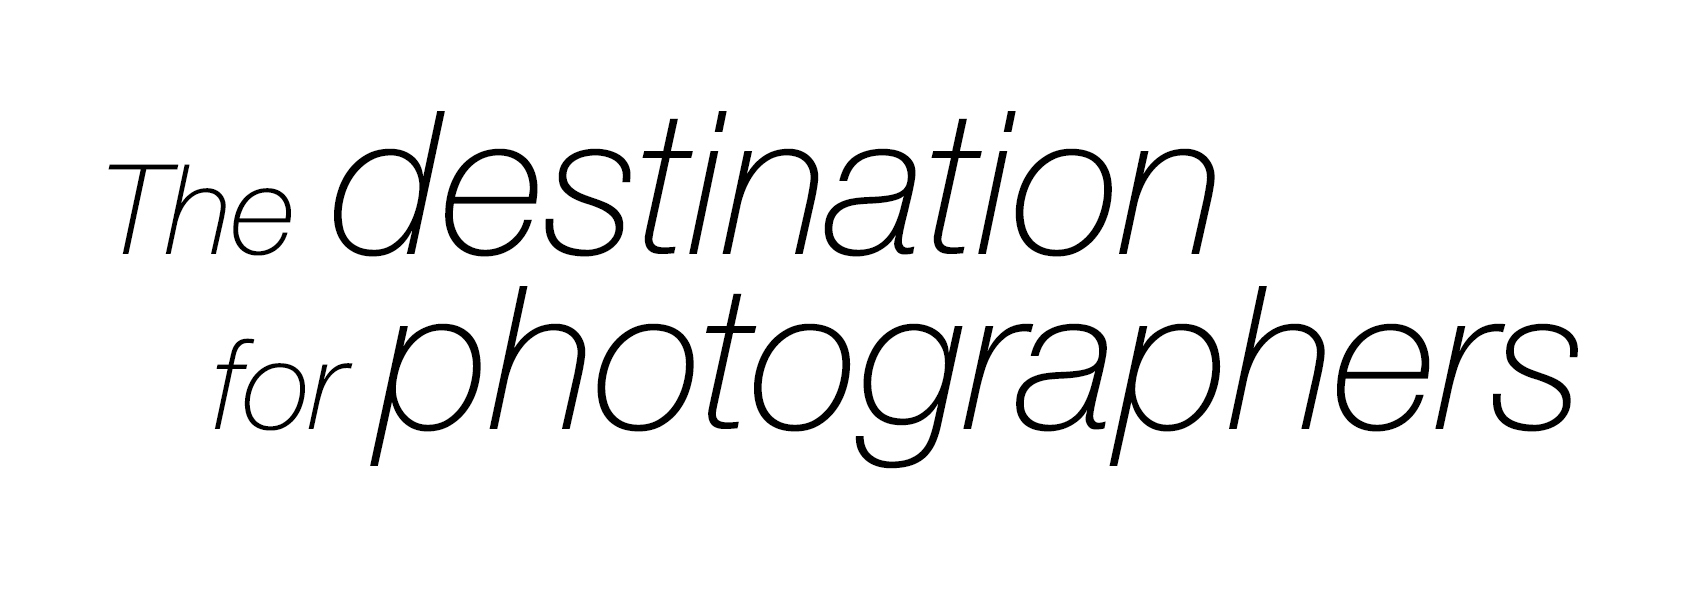 The destination for photographers